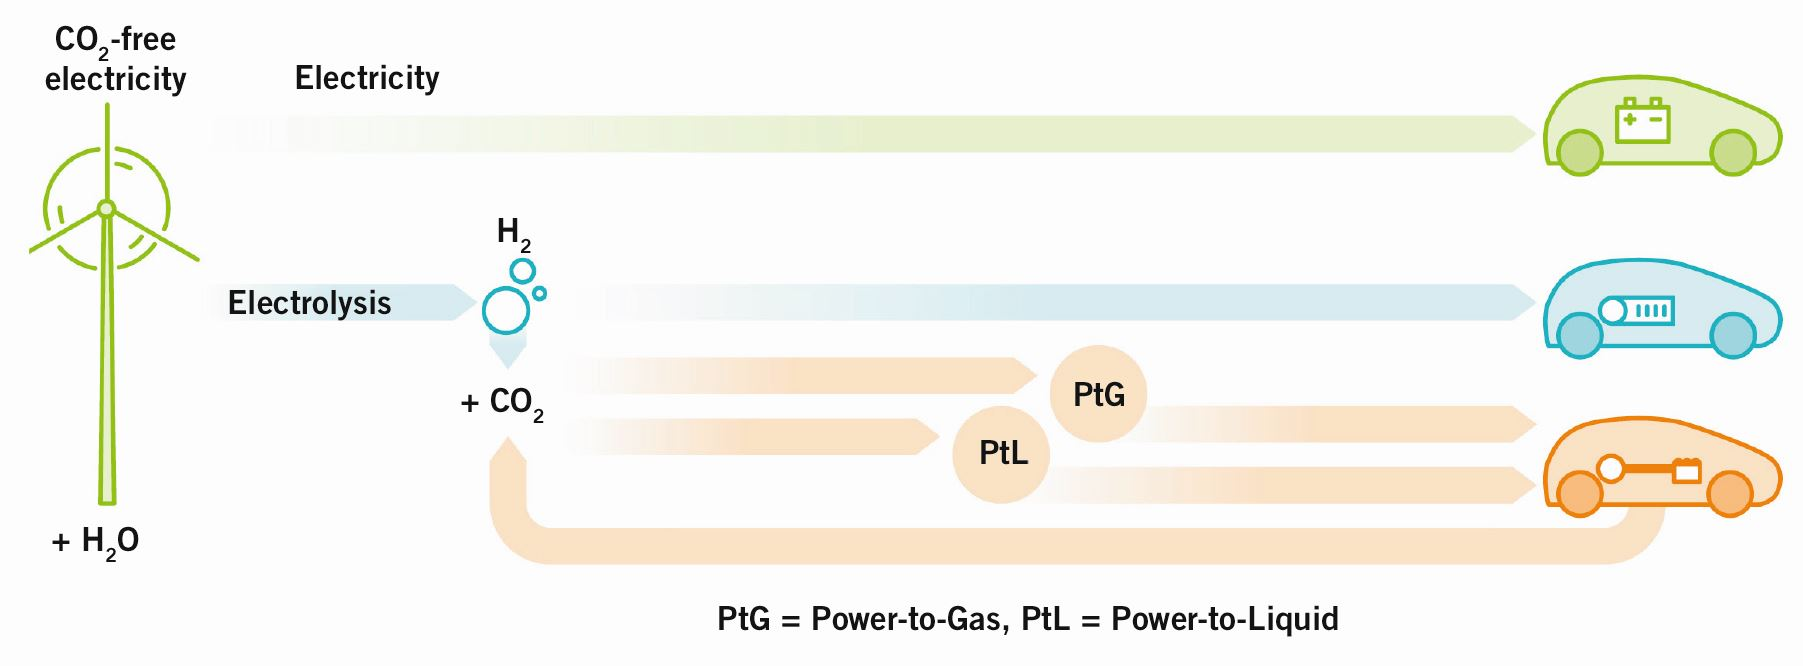 Energy Paths for Road Transport in the Future | SpringerLink